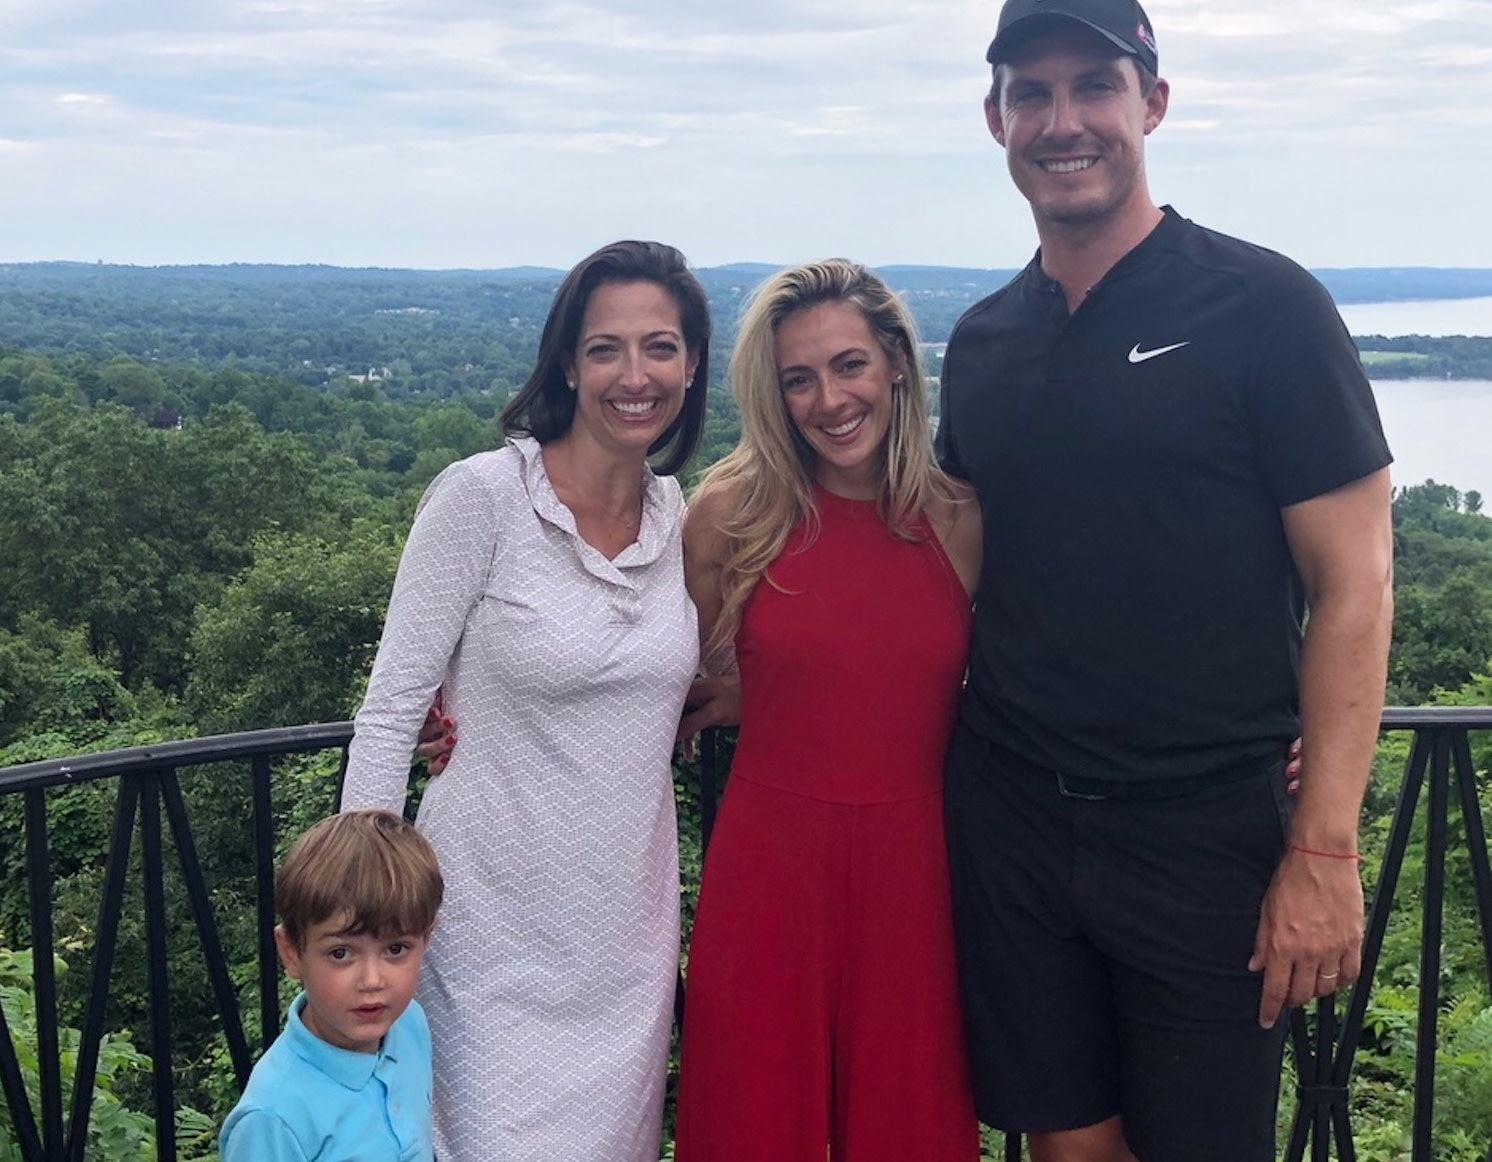 PGA golfer Jamie Lovemark and his wife Tiva, with Dr. Moliterno and her son Aydin Günel